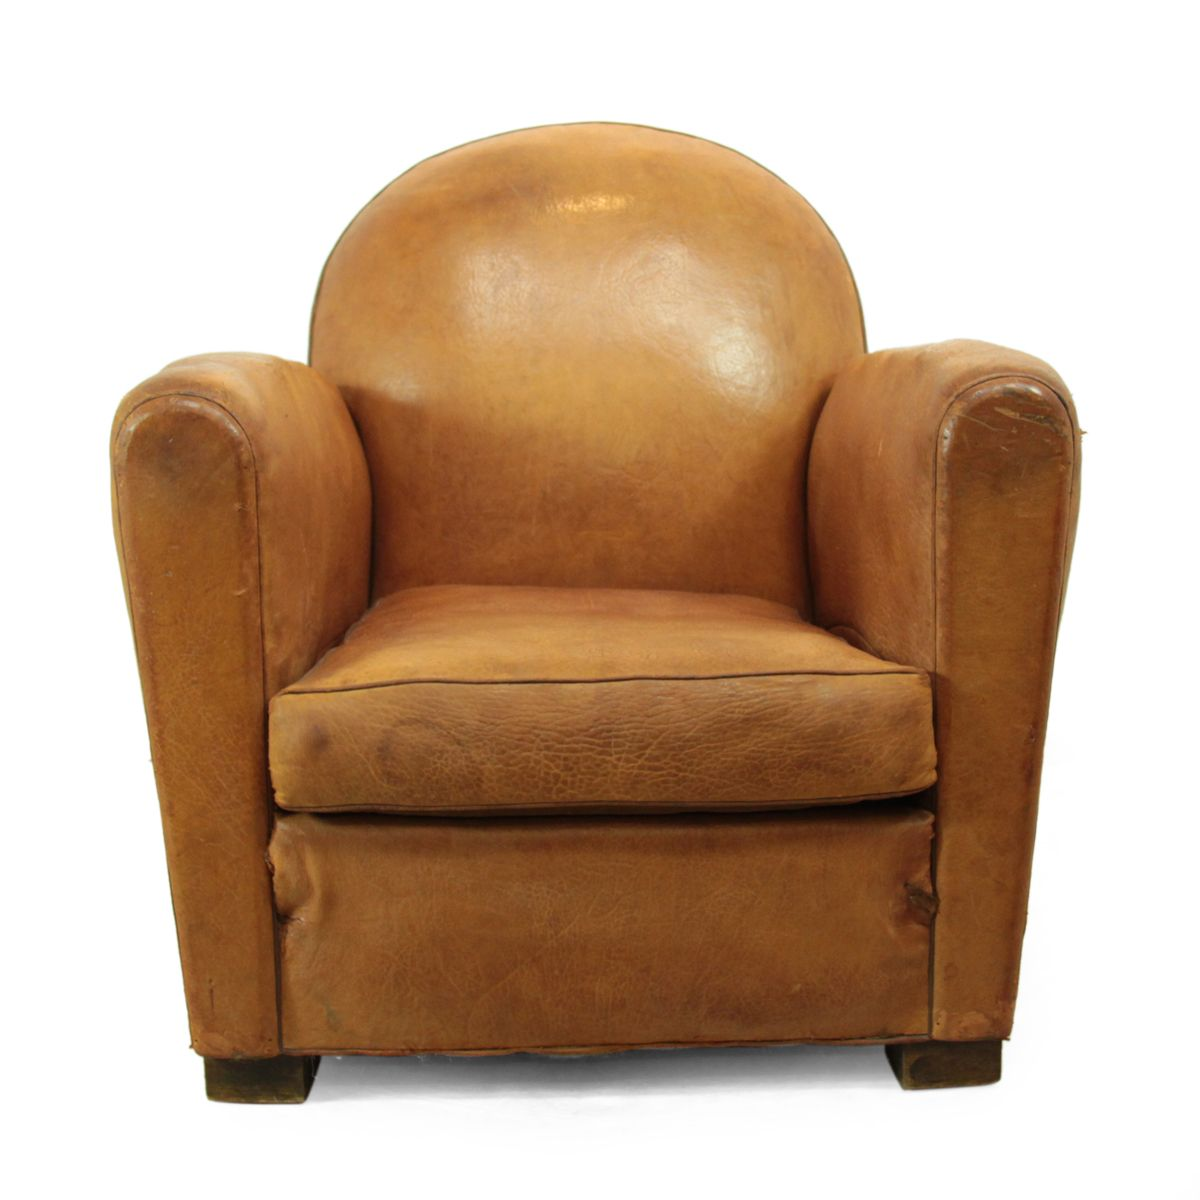 vintage french brown leather club chair 1930s for sale at pamono. Black Bedroom Furniture Sets. Home Design Ideas